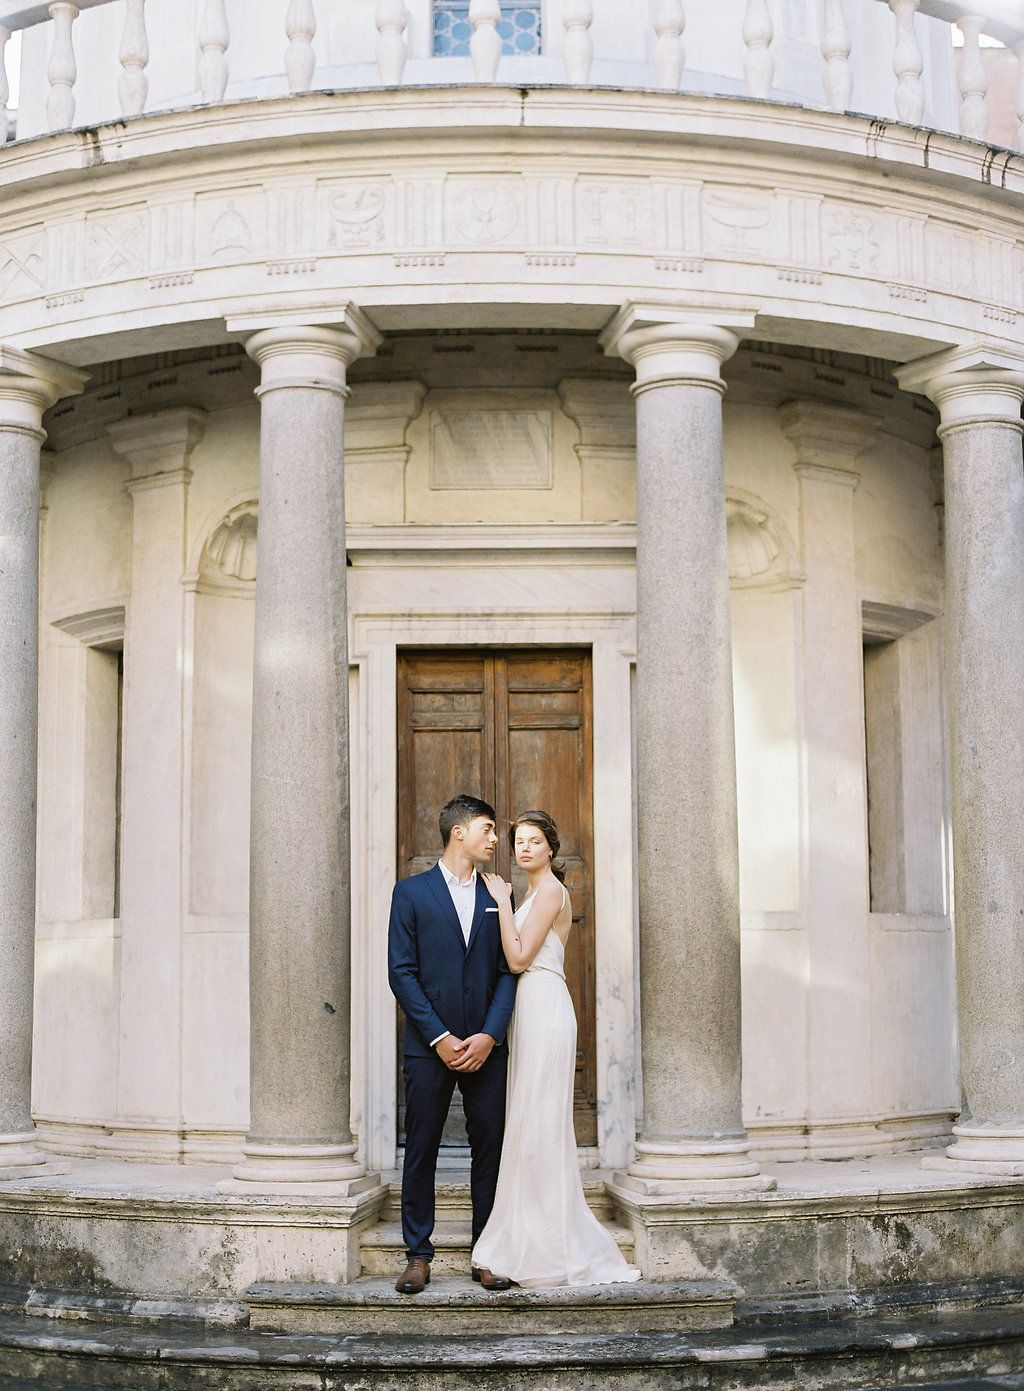 Vicki_Grafton_Photography_Rome_Italy_Wedding_Photographer_2017-118